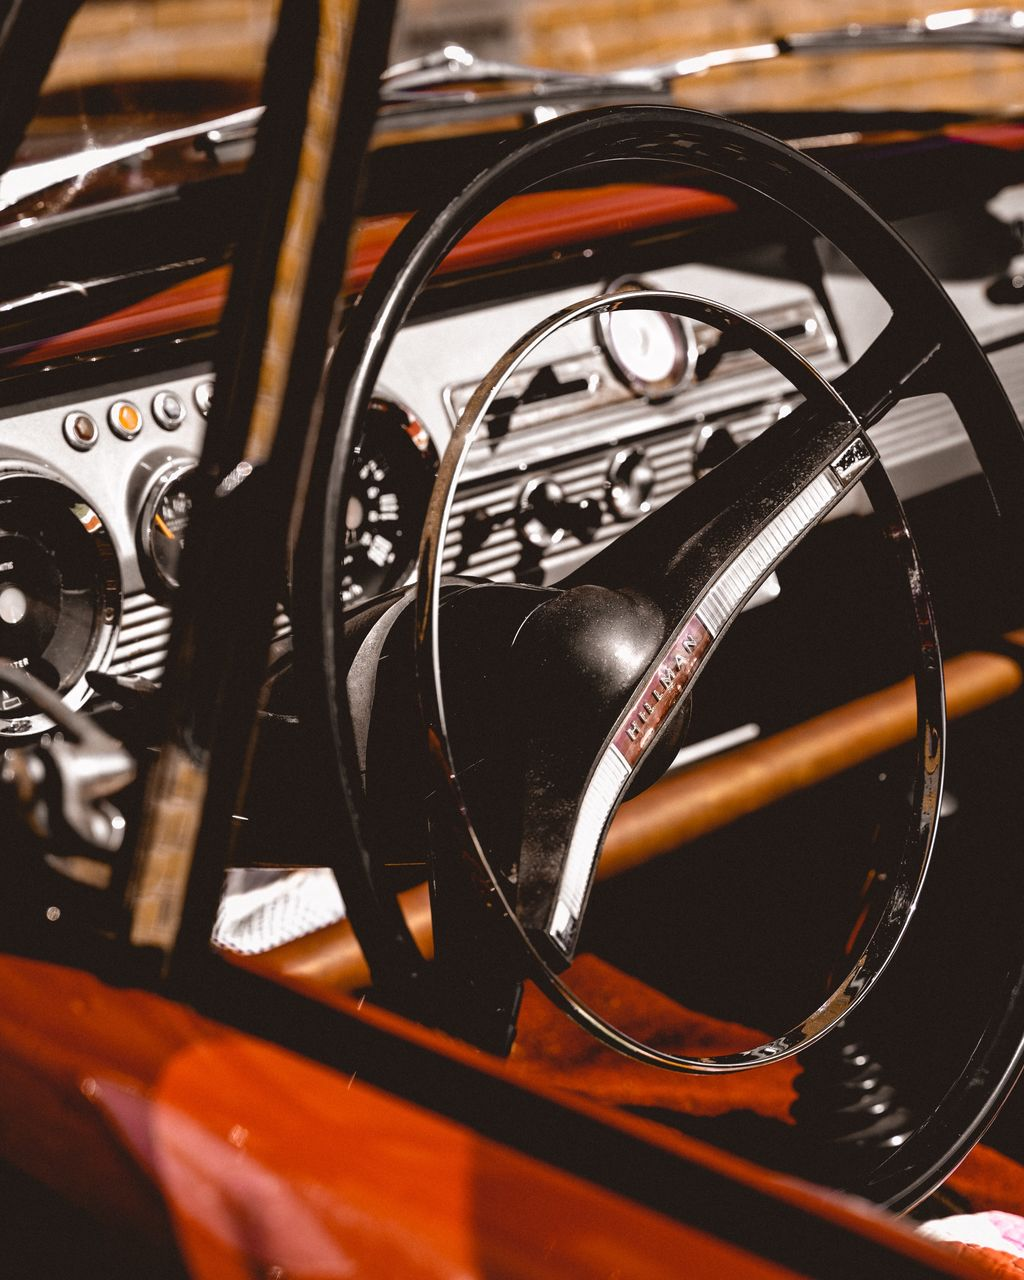 car, motor vehicle, close-up, land vehicle, mode of transportation, vehicle interior, transportation, indoors, car interior, control panel, no people, steering wheel, dashboard, glass - material, number, speedometer, black color, selective focus, metal, focus on foreground, luxury